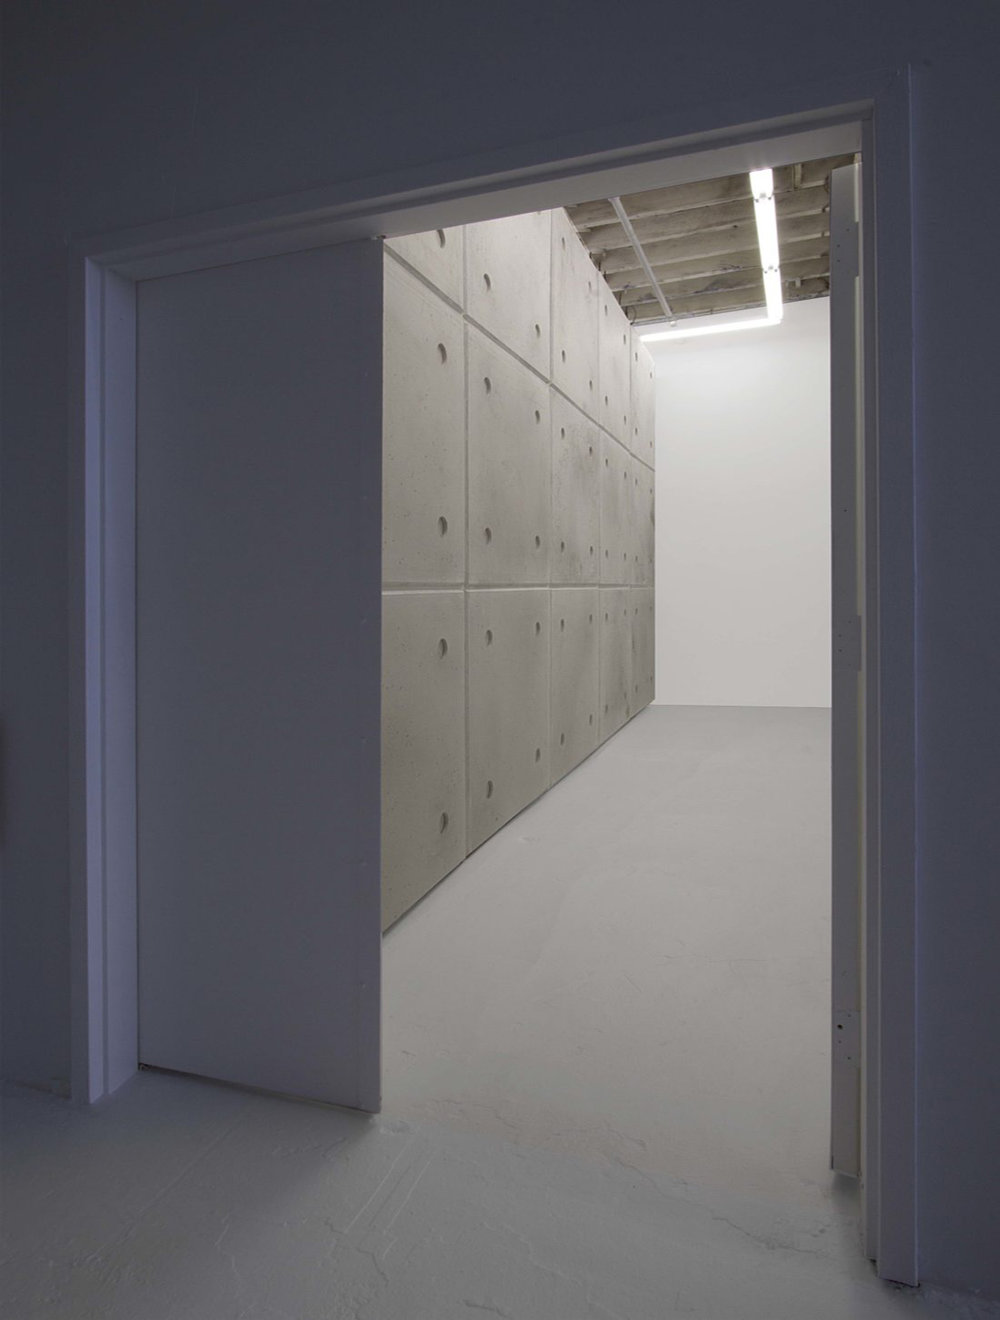 Mikkel Carl   Terrified of Society and Its Unclean Bite , 2018 dimensions variable to installation   M23/Project Room view from entry